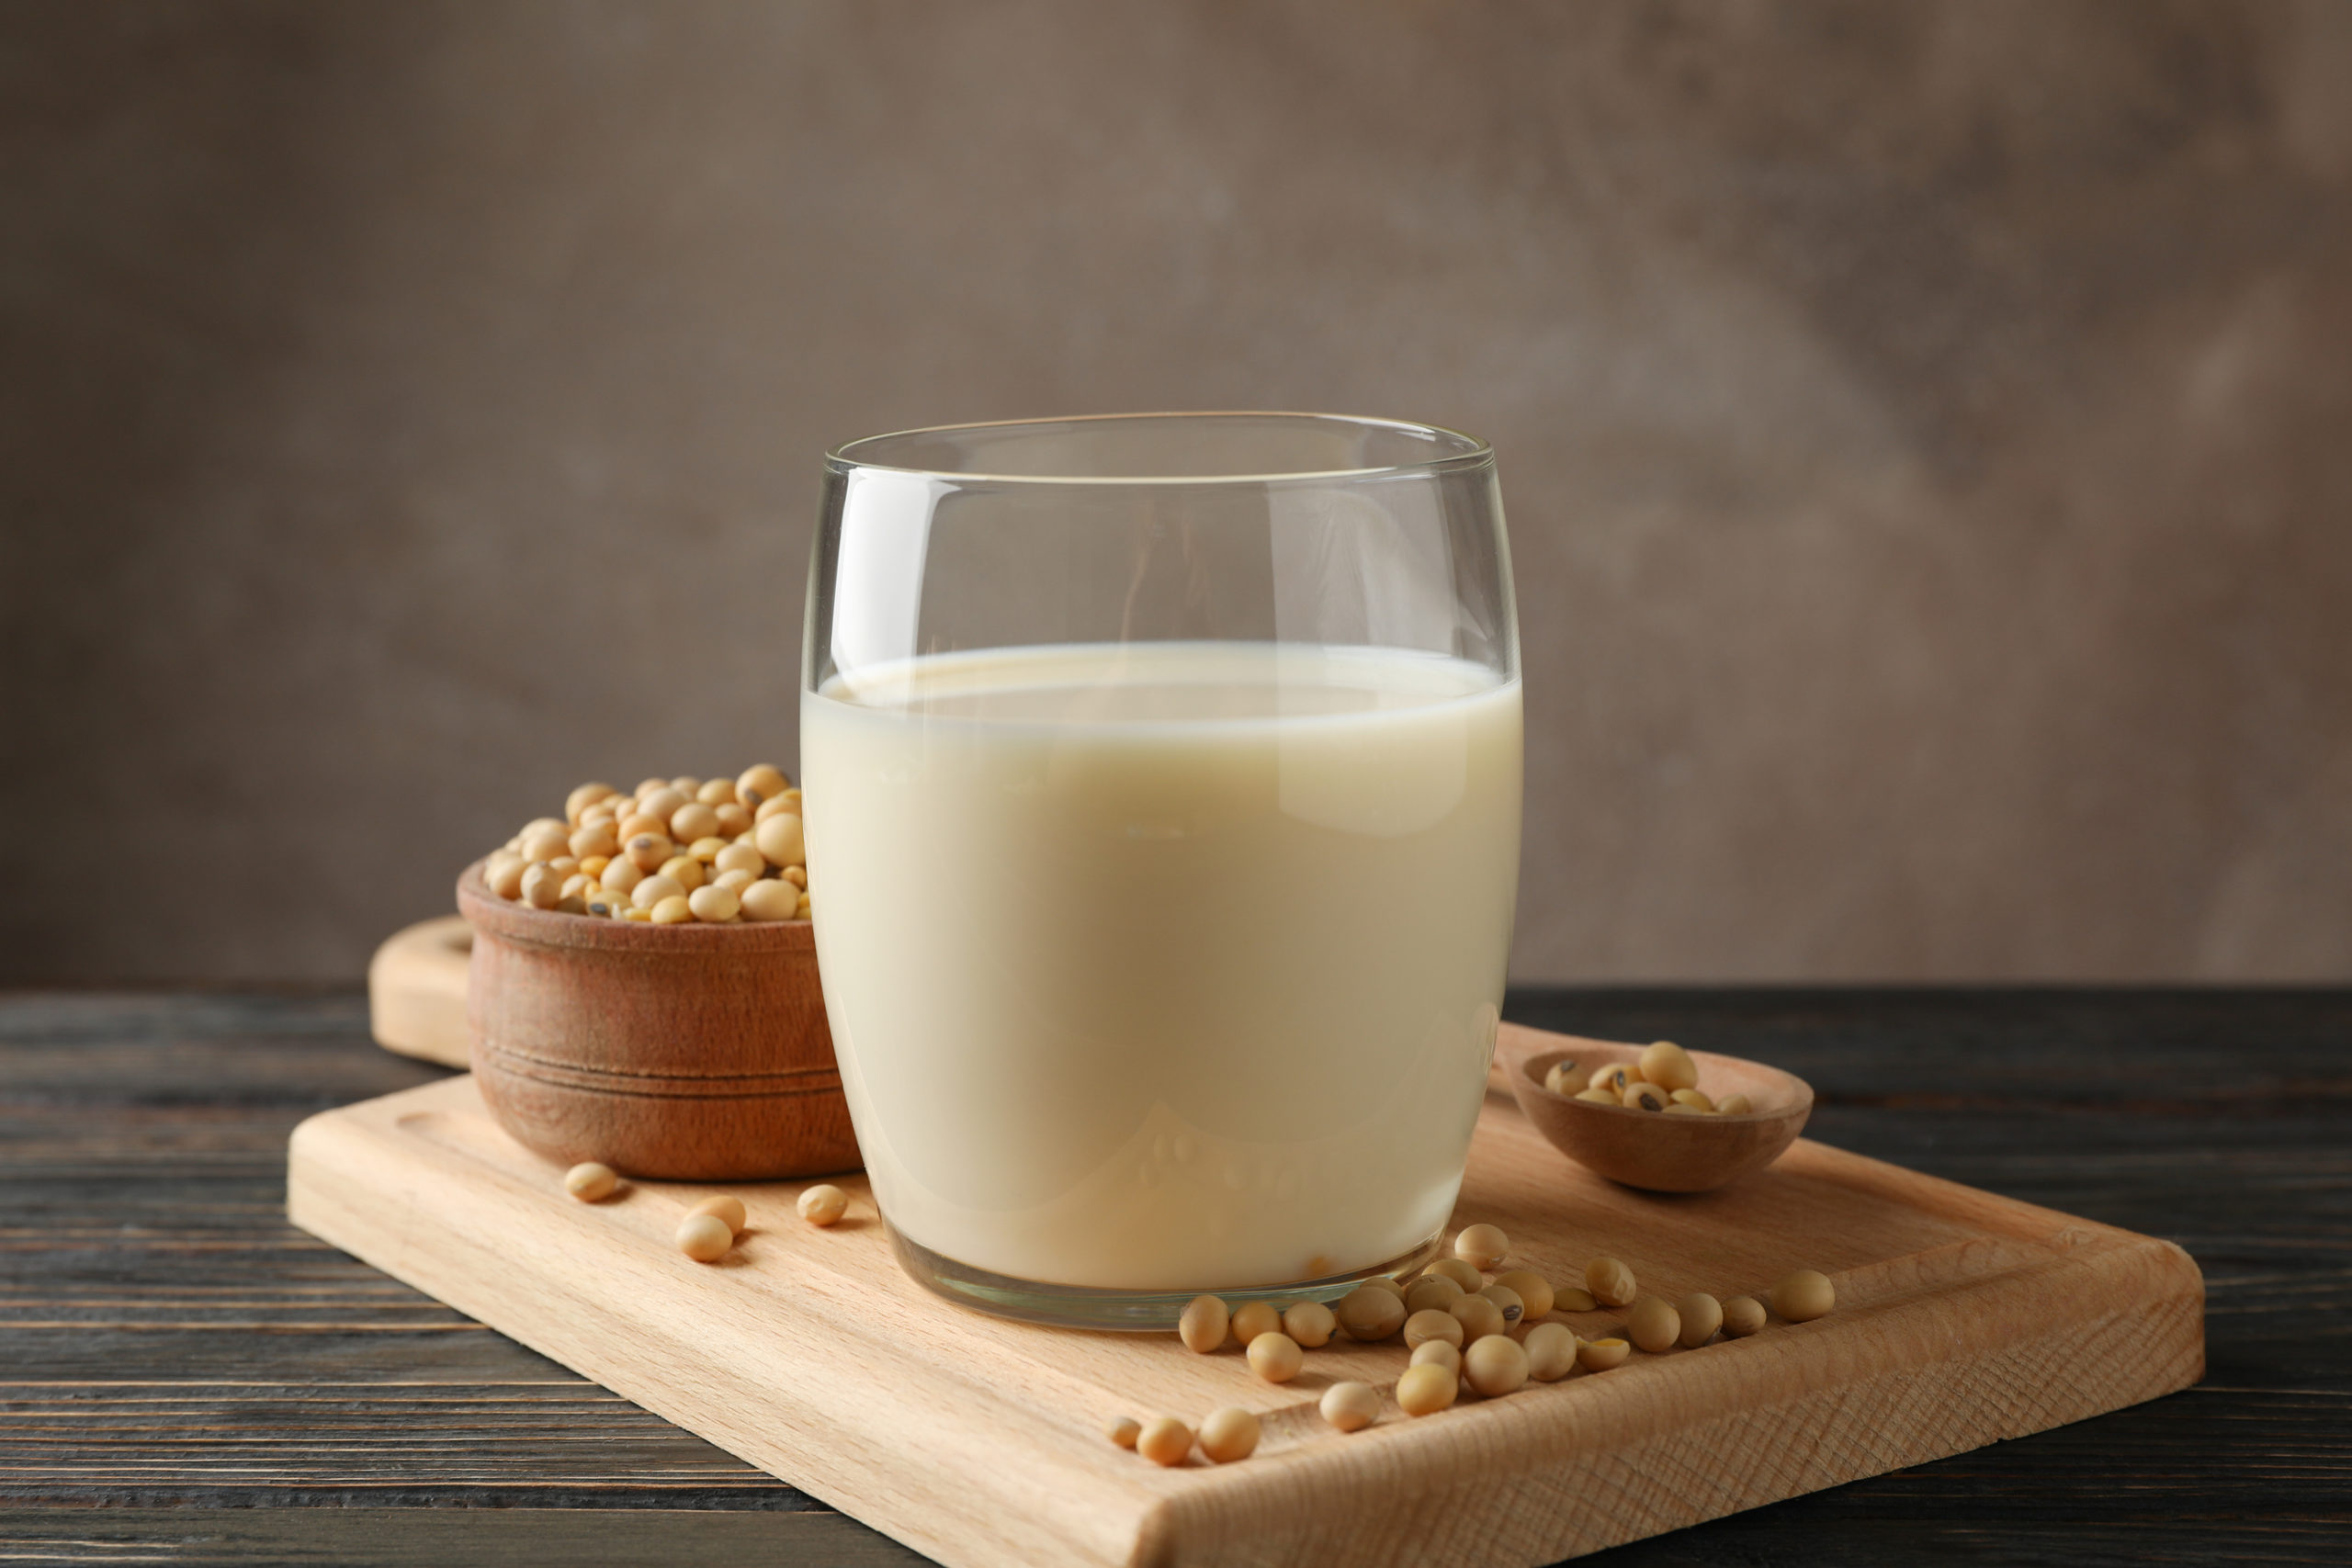 Soymilk and Cow's Milk: New Evidence to Consider